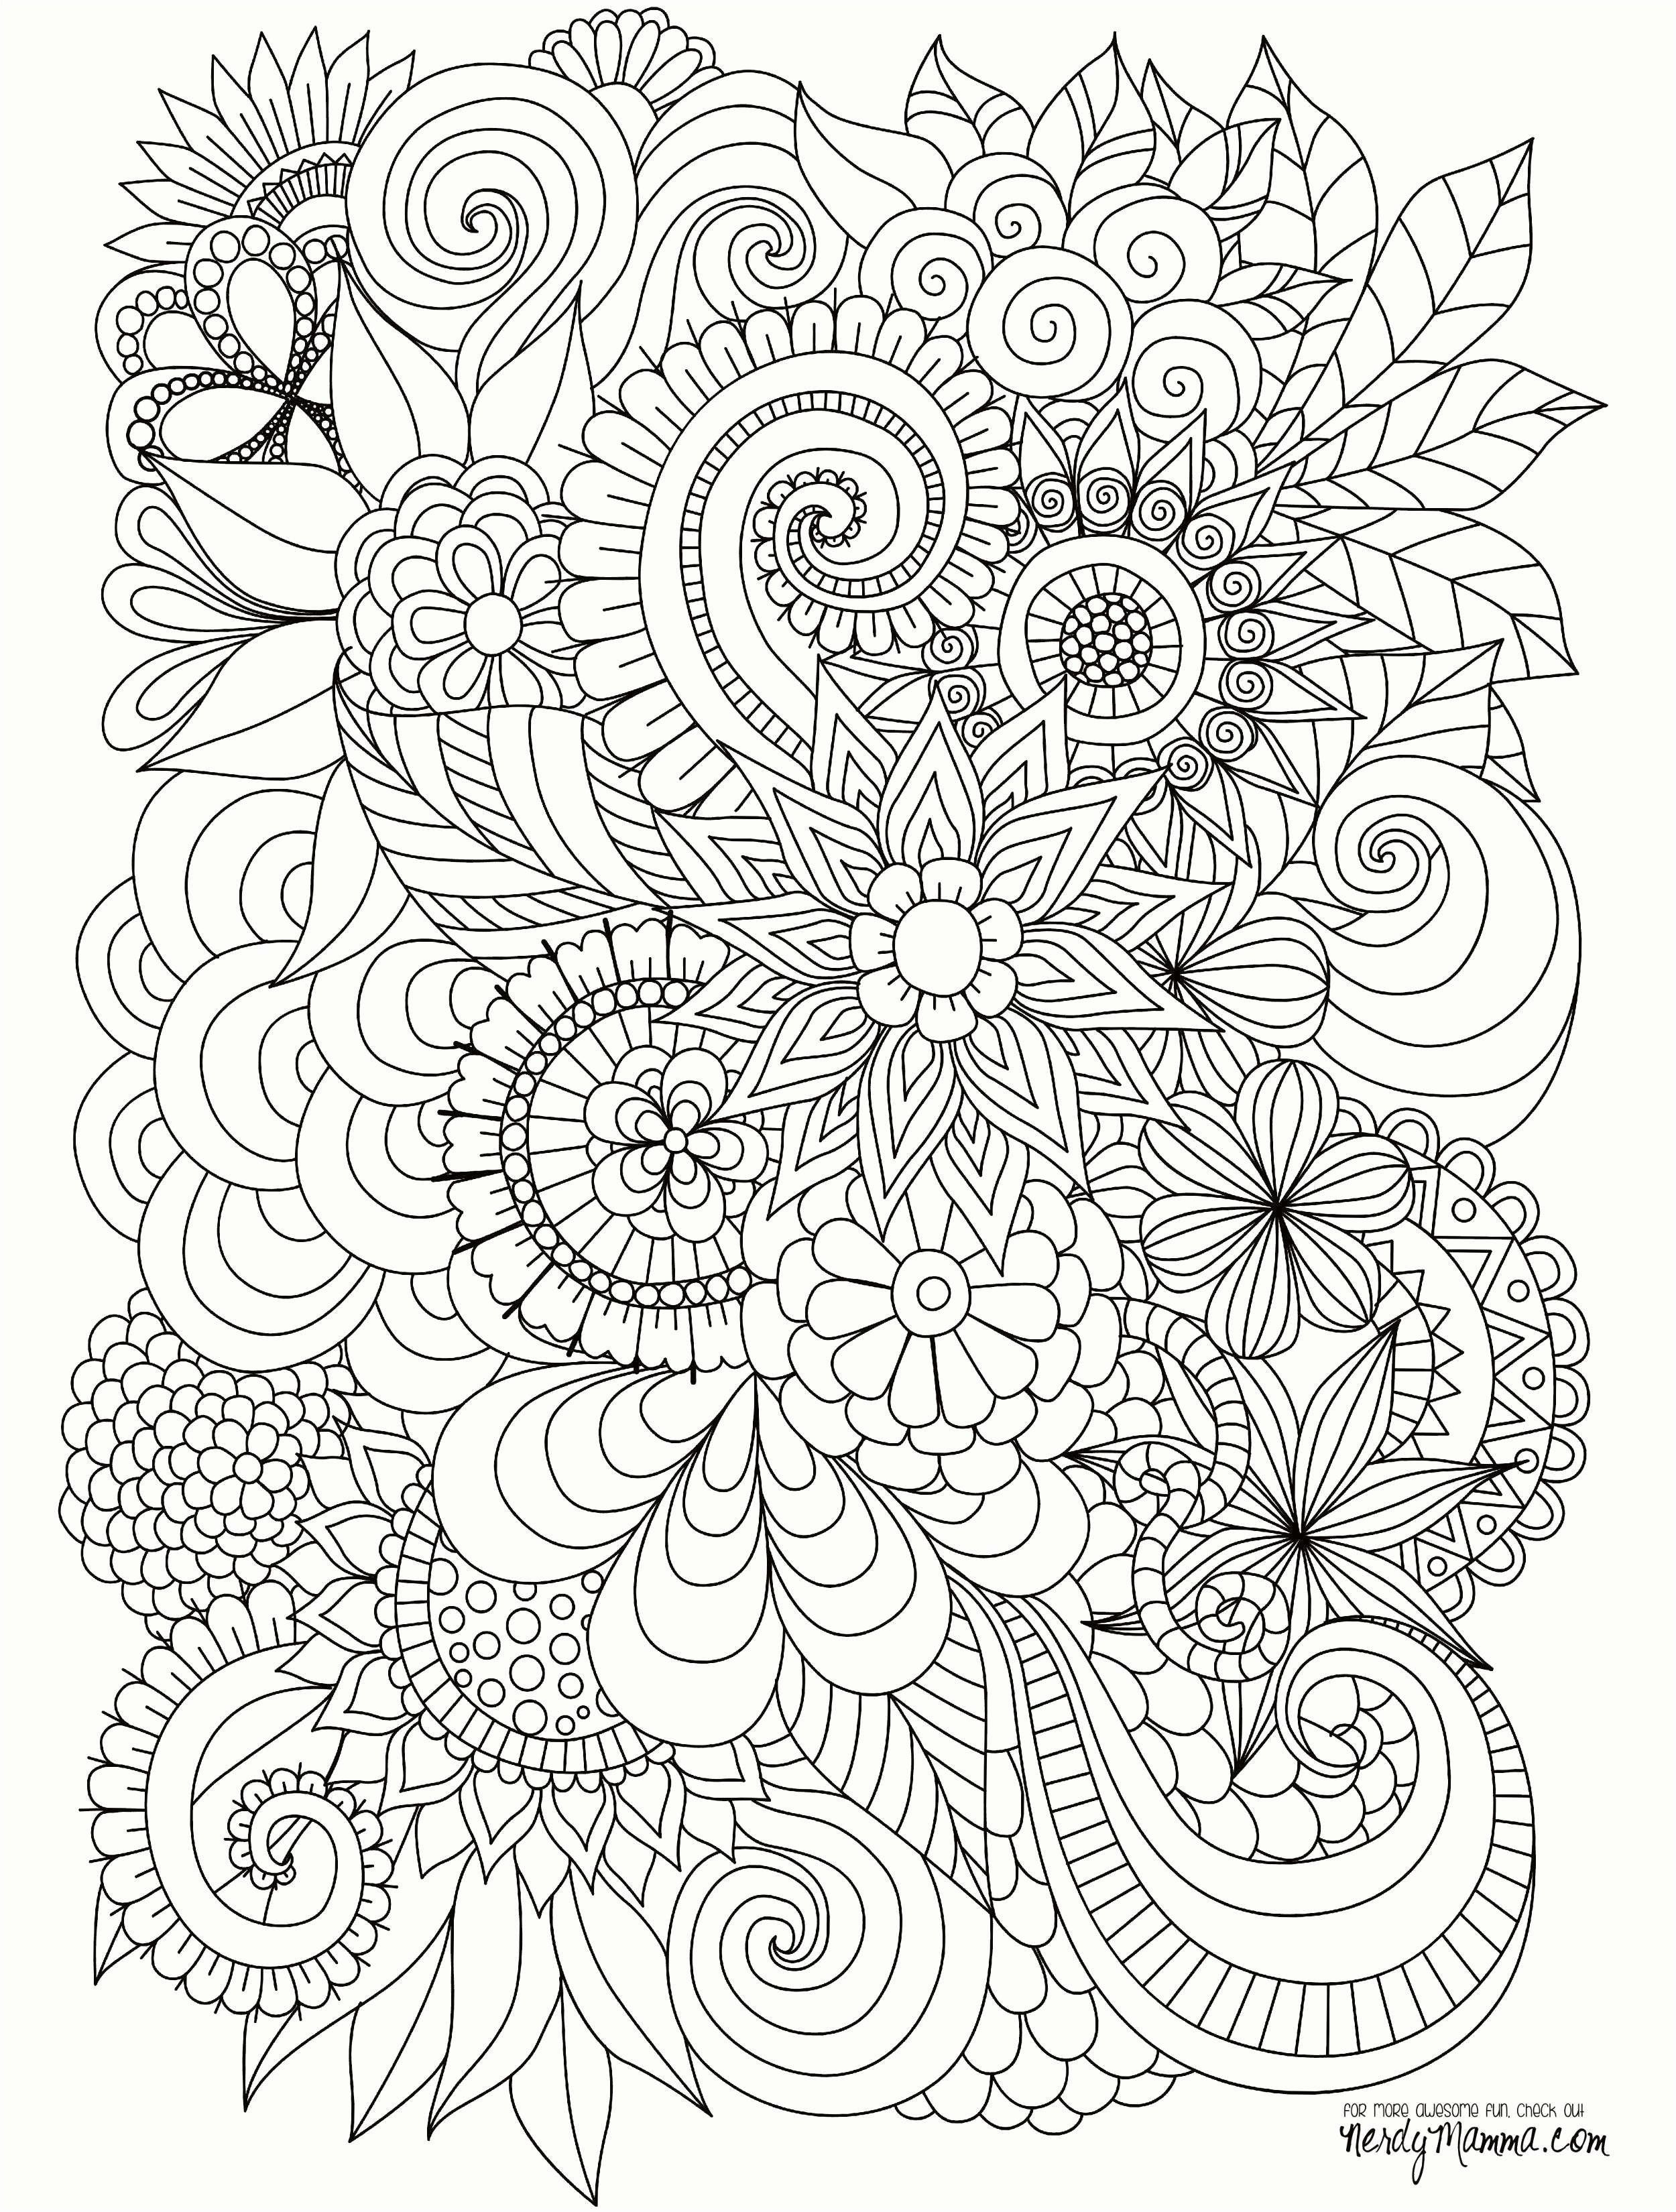 Coloring Pages Flowers For Adults Elegant 21 All Coloring Pages Gallery Coloring Sheets Halaman Mewarnai Bunga Buku Mewarnai Halaman Mewarnai [ 3300 x 2500 Pixel ]